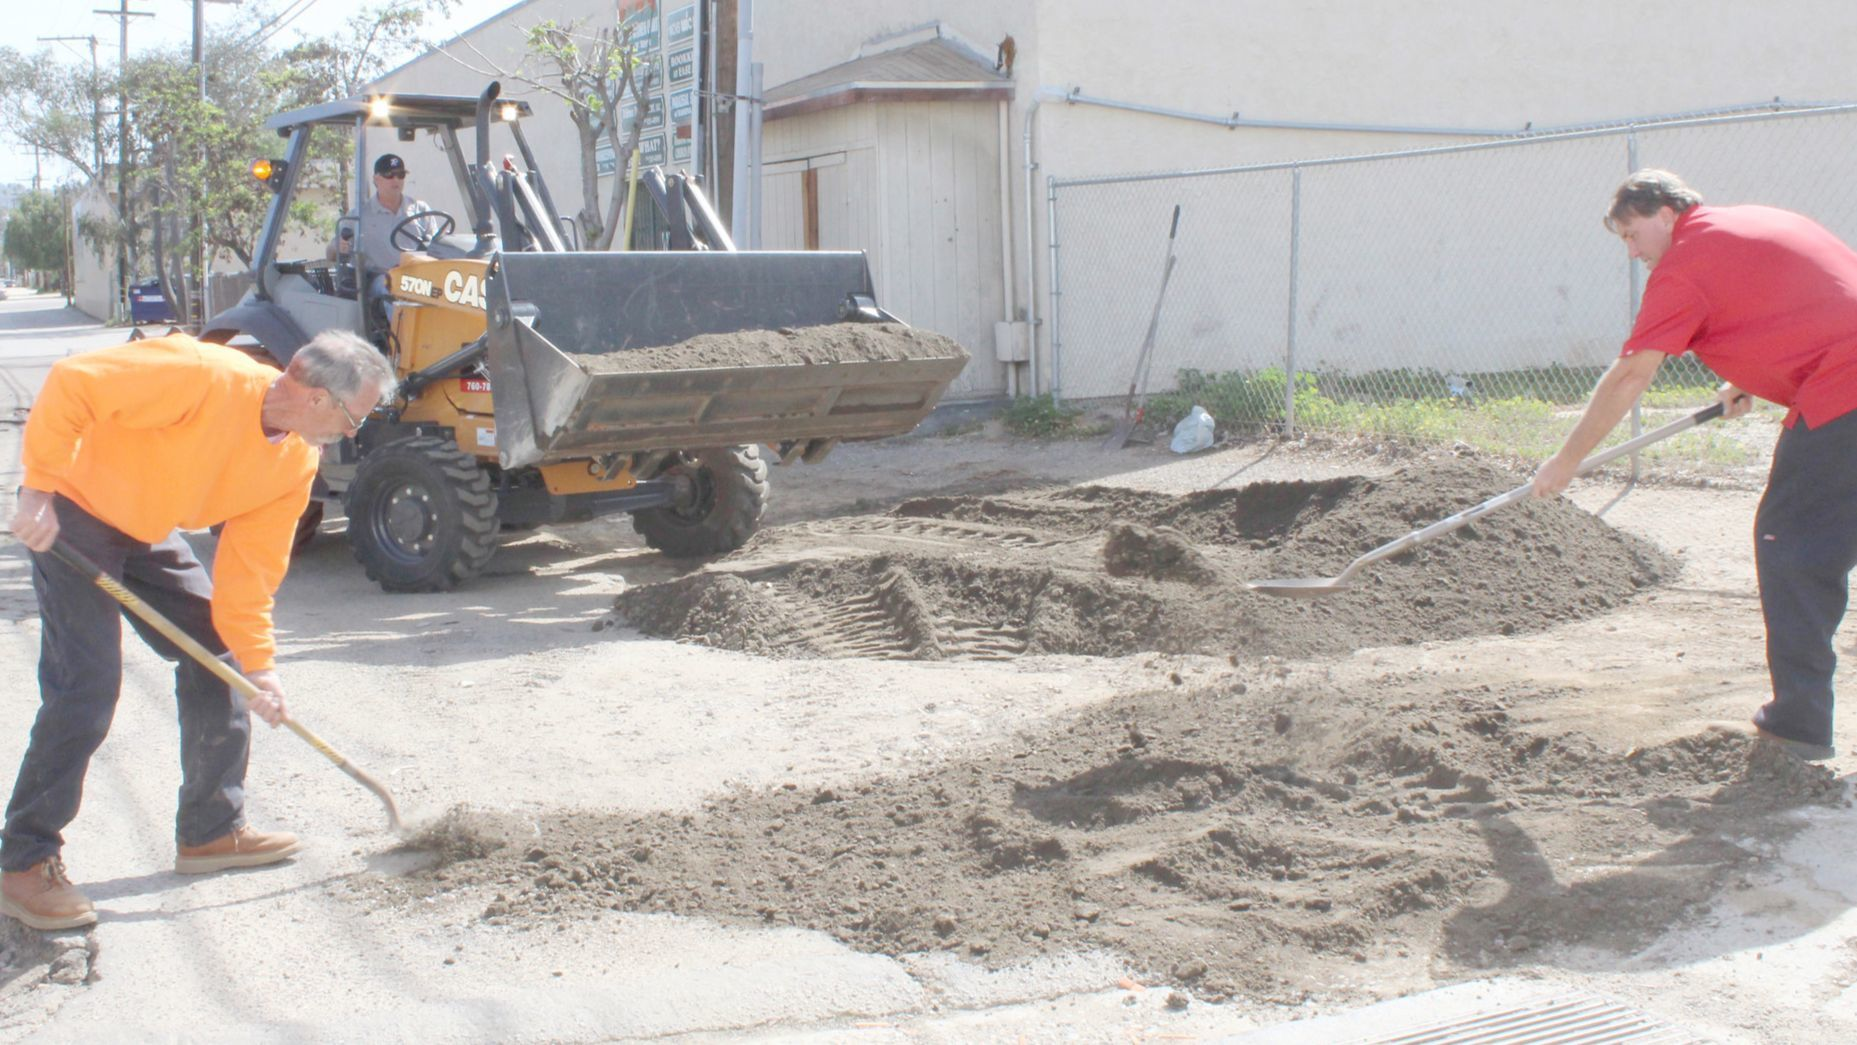 Jim Piva works the bobcat while John Thompson and Mike Morgart shovel decomposed granite road mix into deep potholes in the alley behind 7-Eleven and Jack in the Box in April.